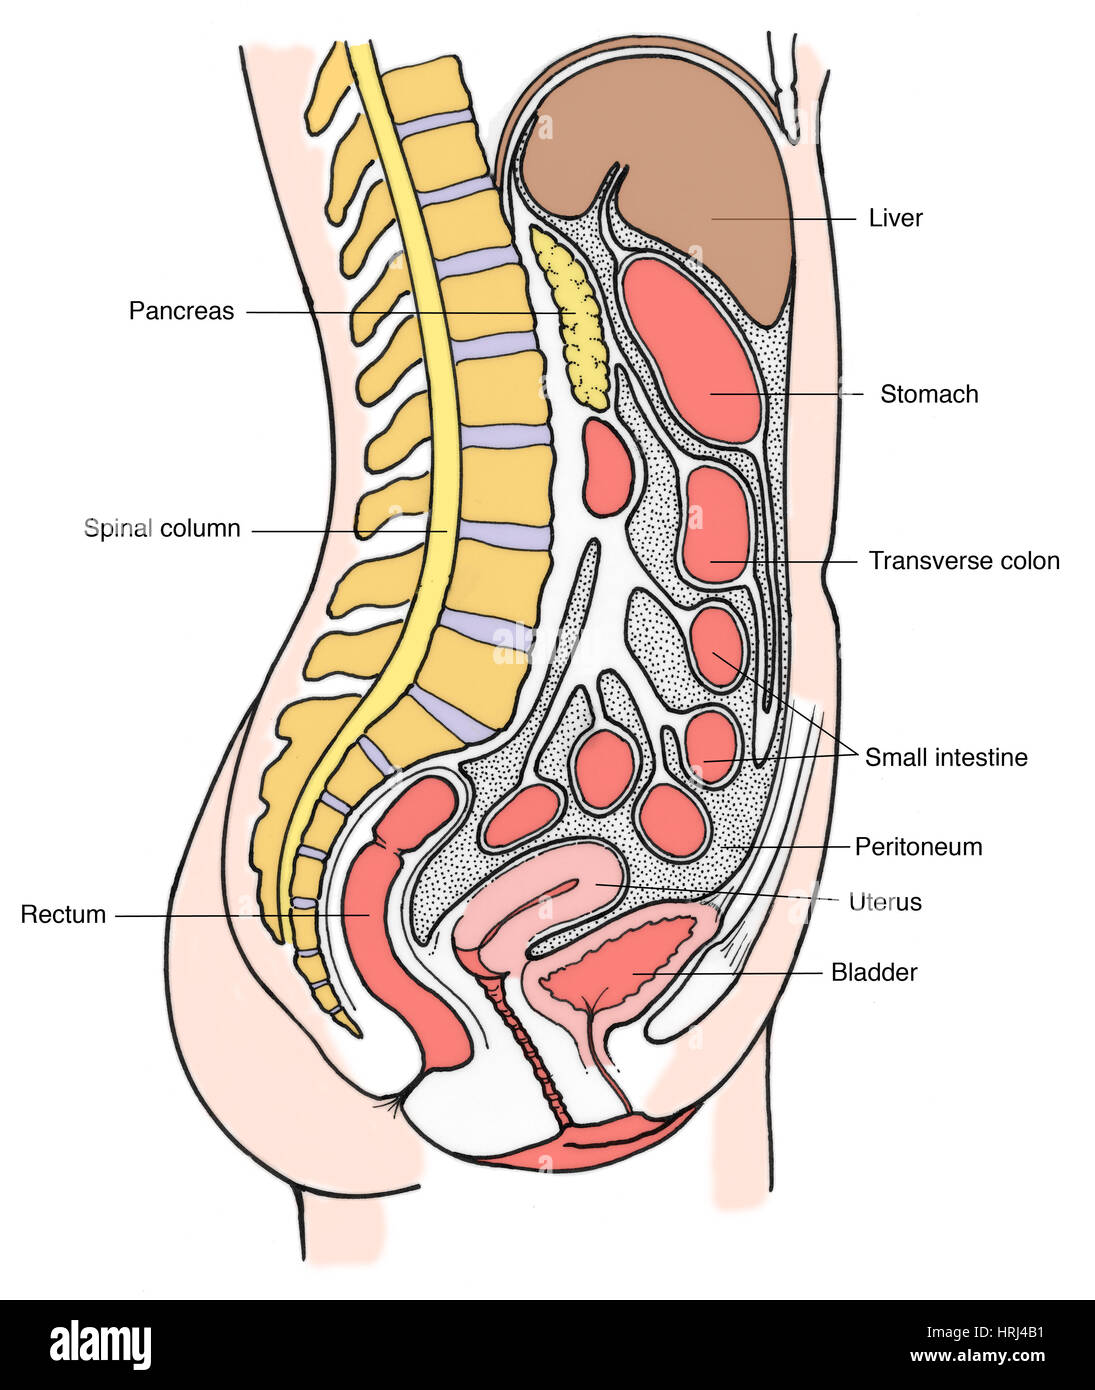 Illustration Of Female Internal Organs Stock Photo 135008245 Alamy